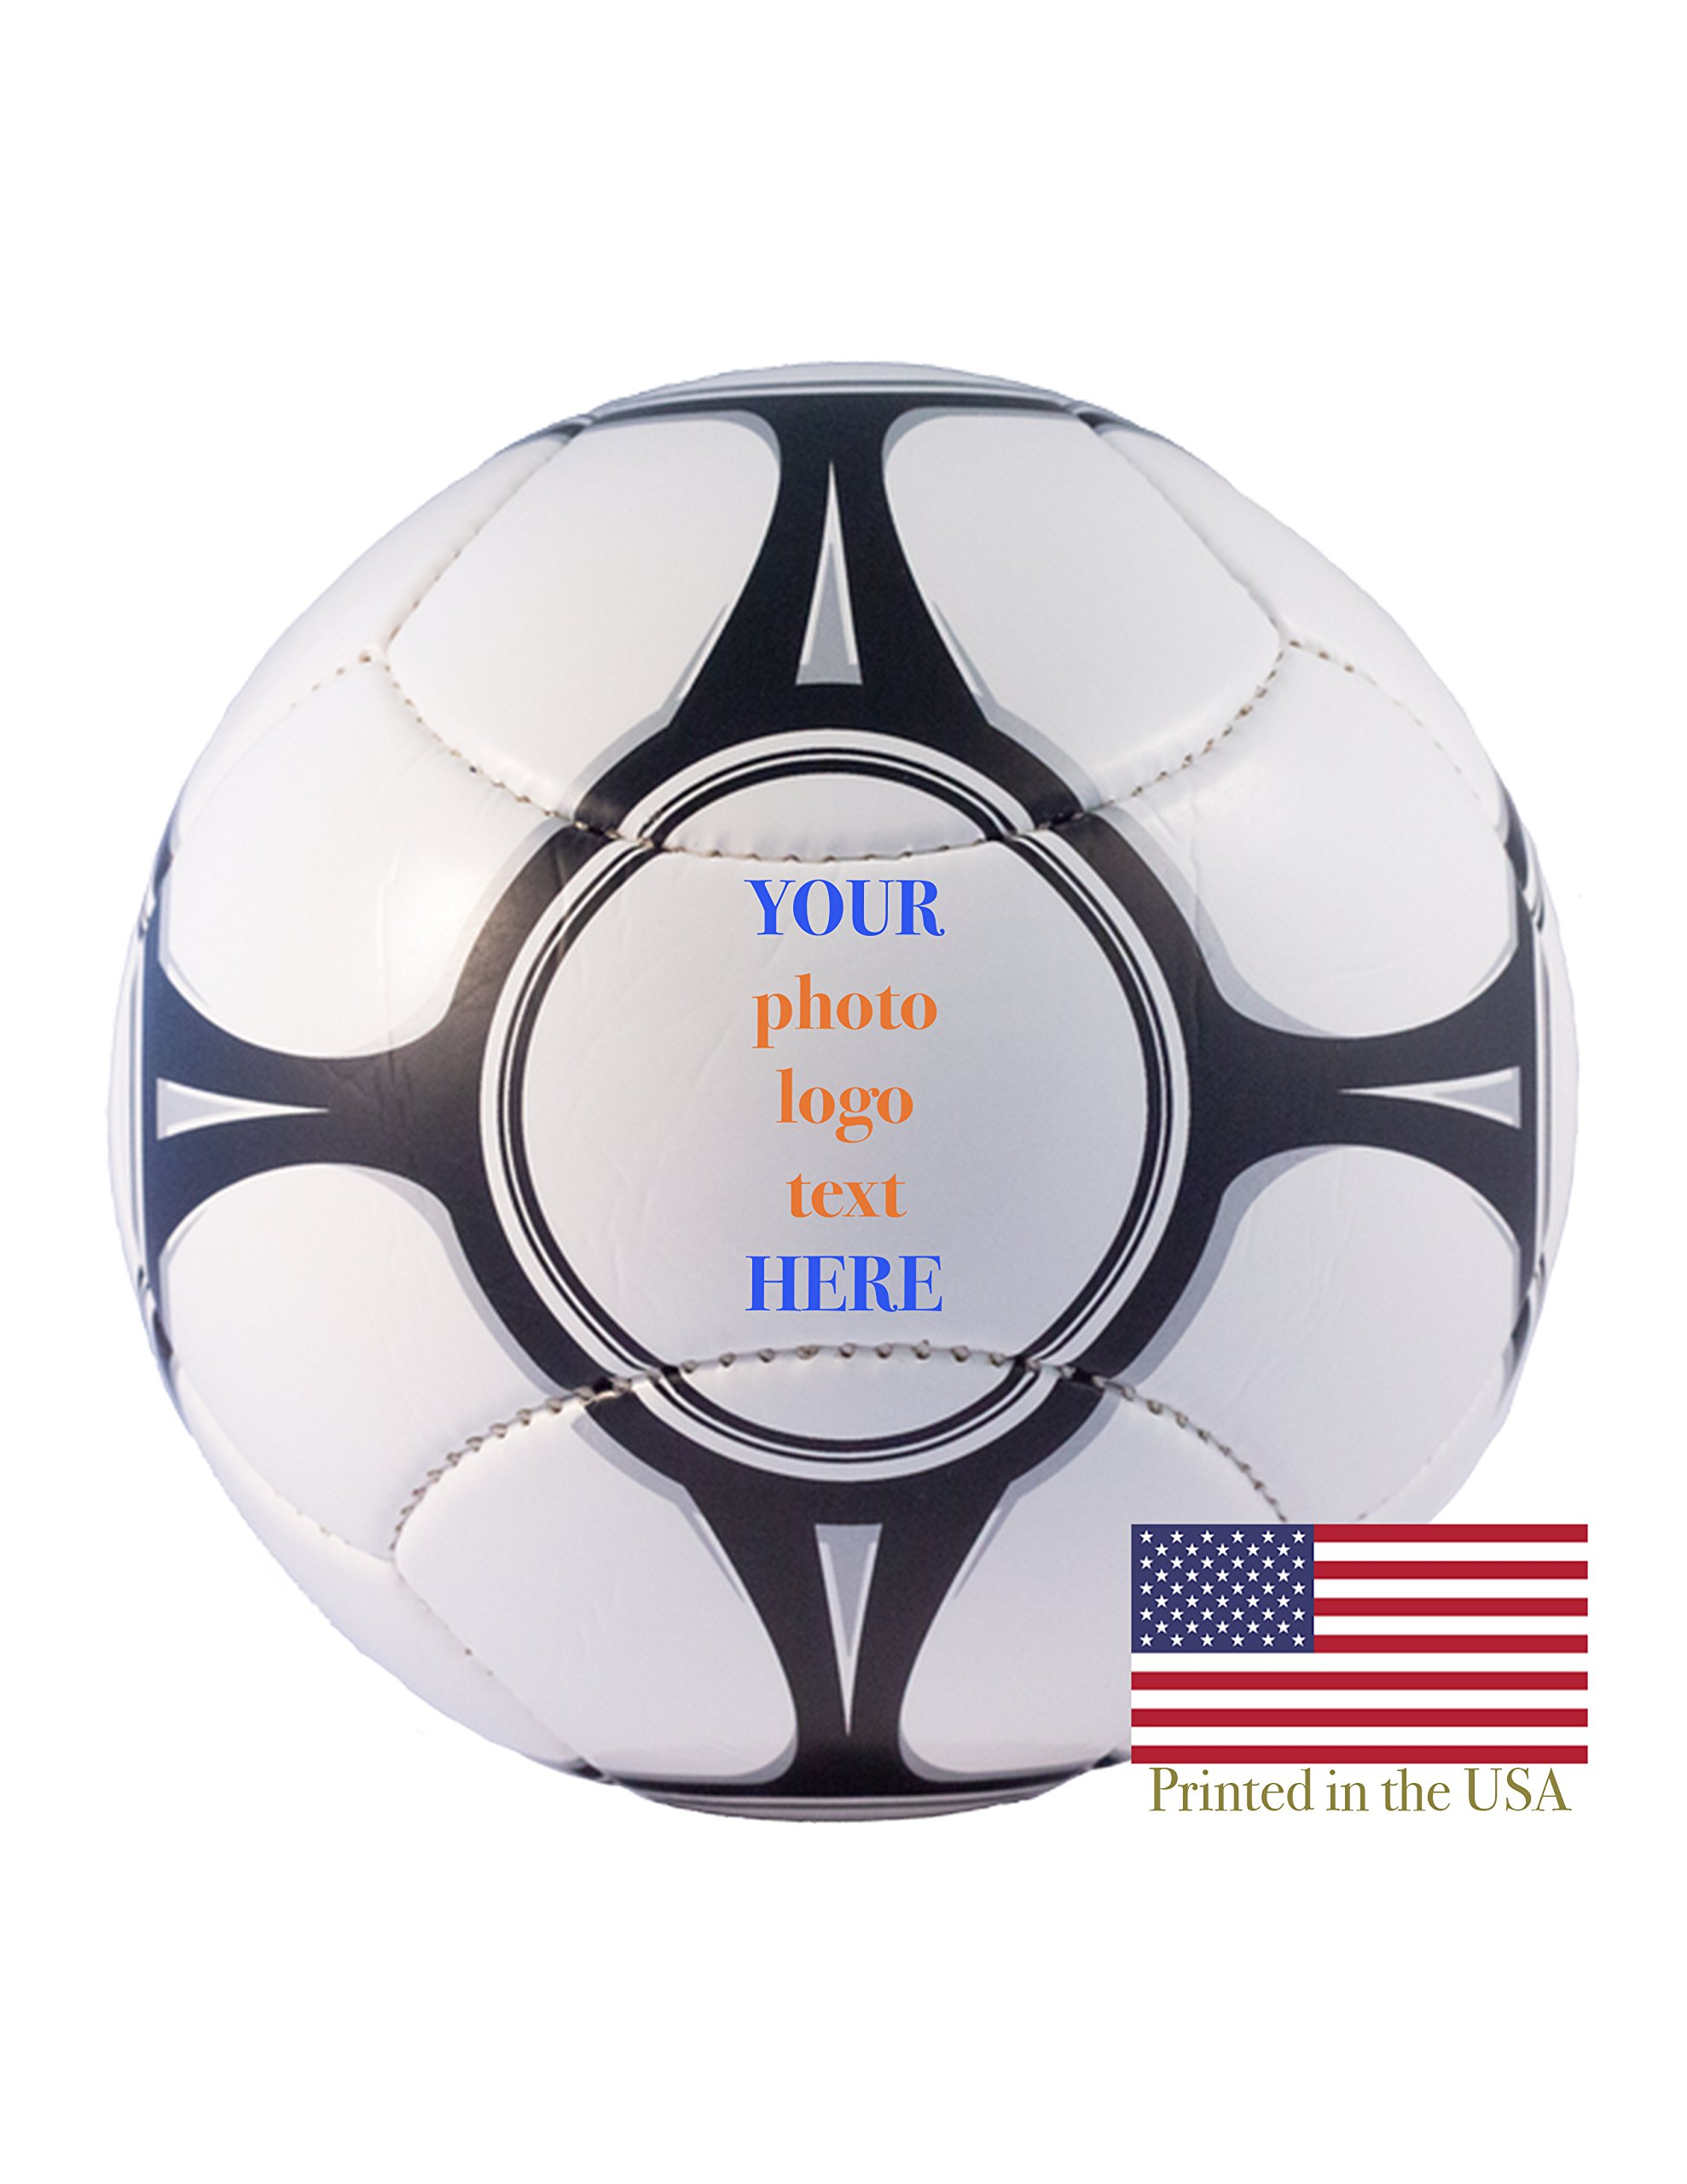 Custom Personalized Euro Soccer Ball Full Size Soccer Ball Ships Next Day, High Resolution Photos, Logos & Text on Soccer Balls Trophies, Personalized Gifts